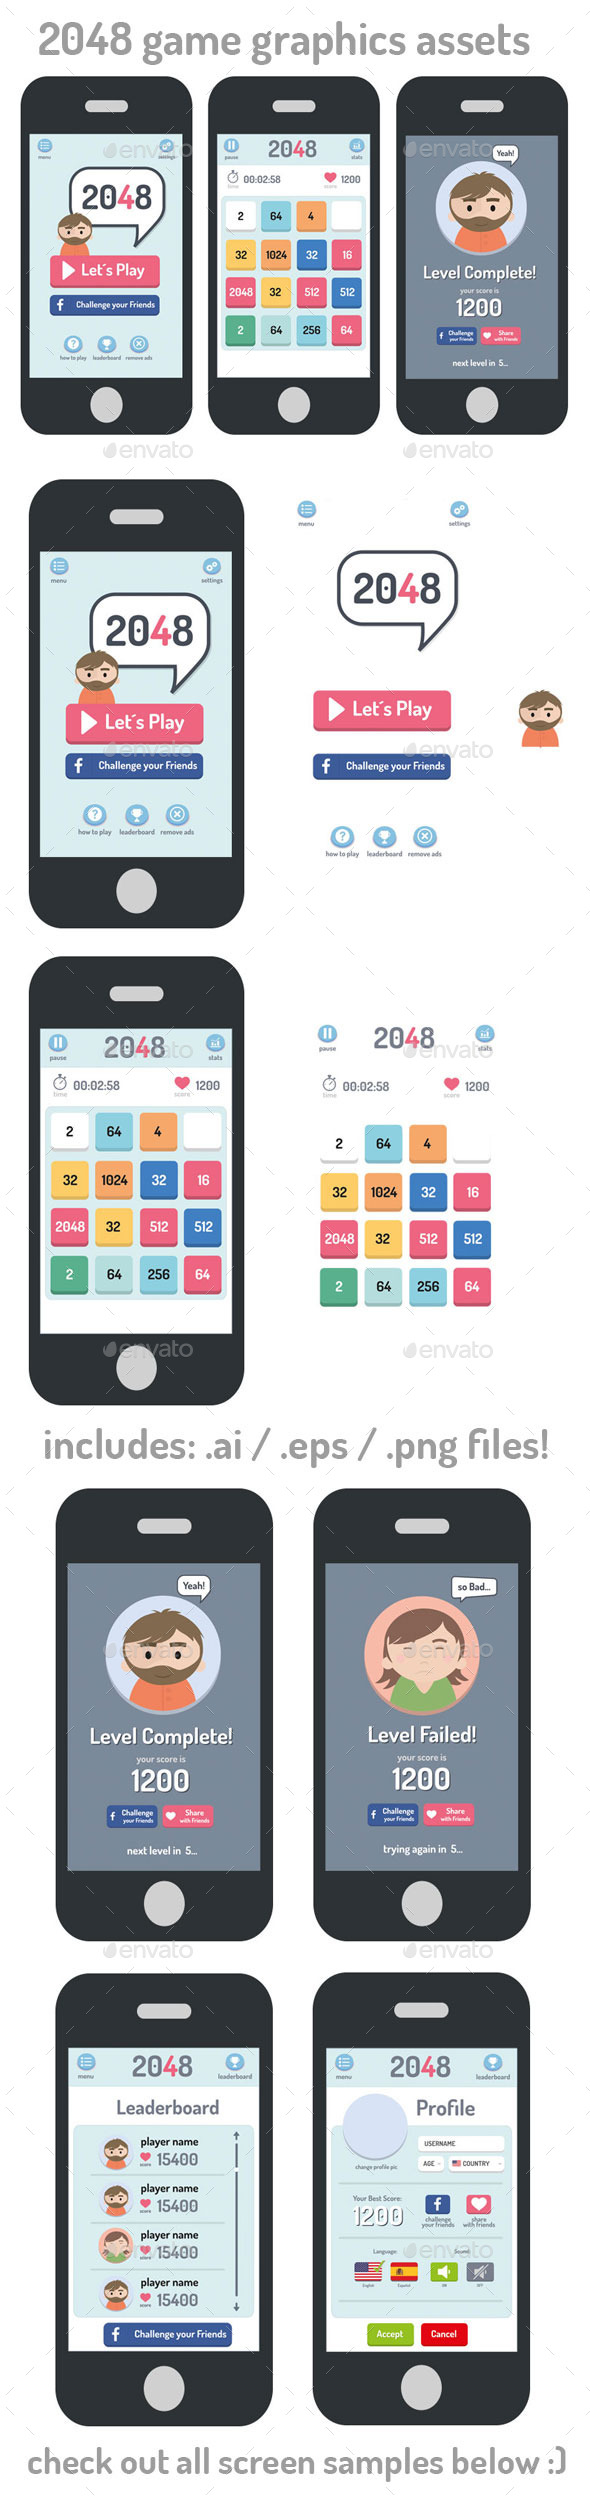 GraphicRiver 2048 Game Style Gui Assets 10694316